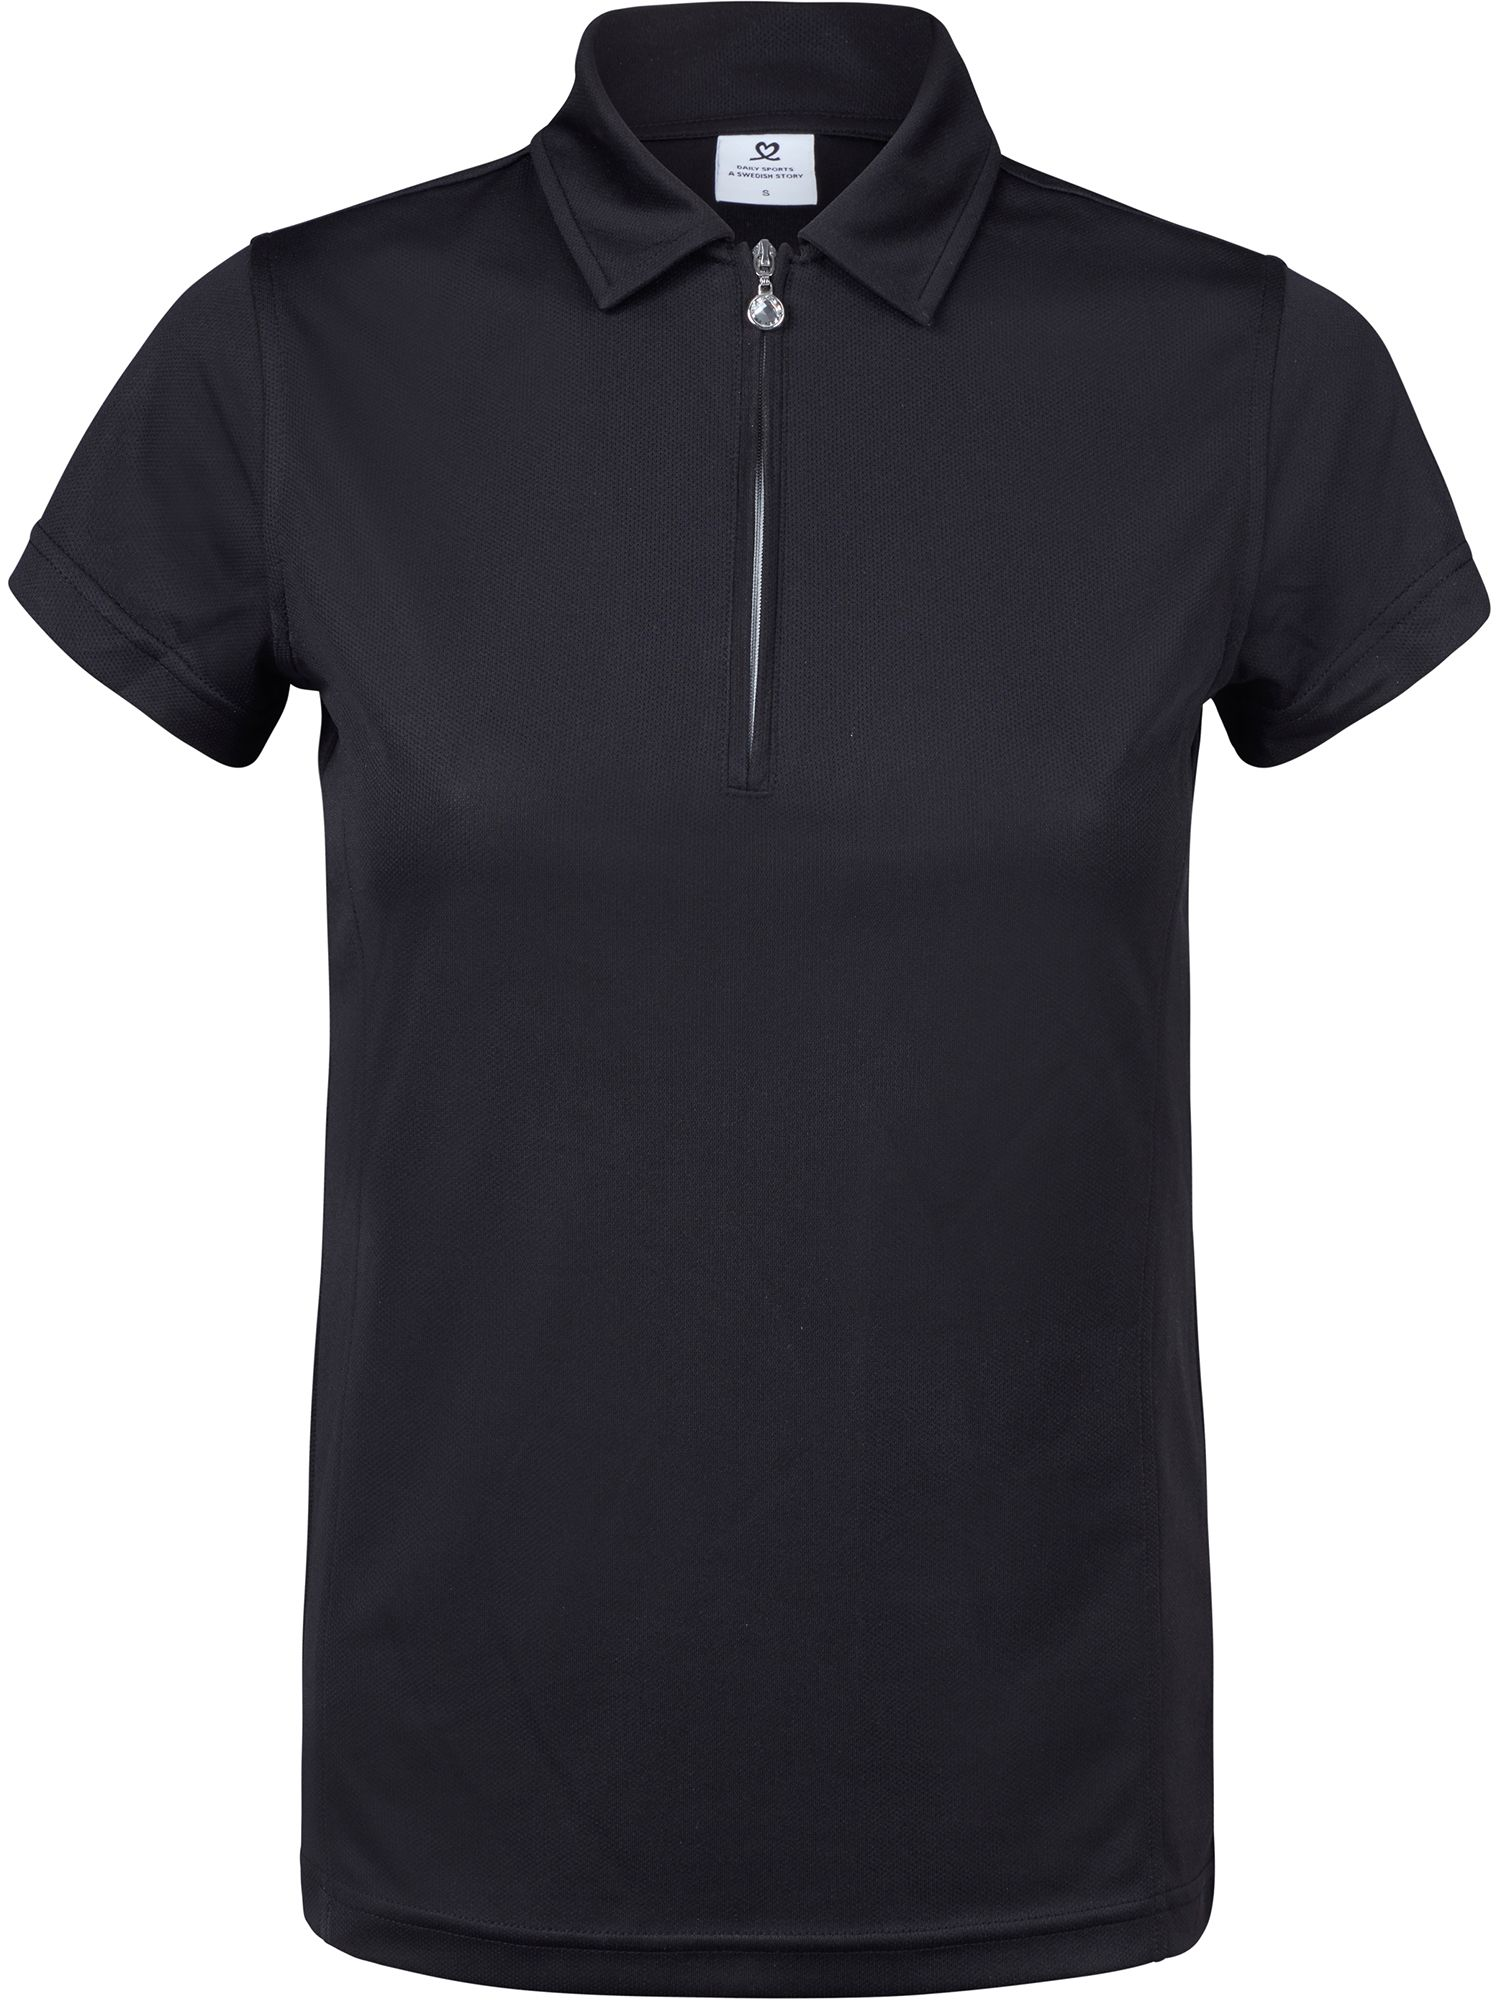 Daily Sports Macy Cap Sleeve Polo Shirt, Black